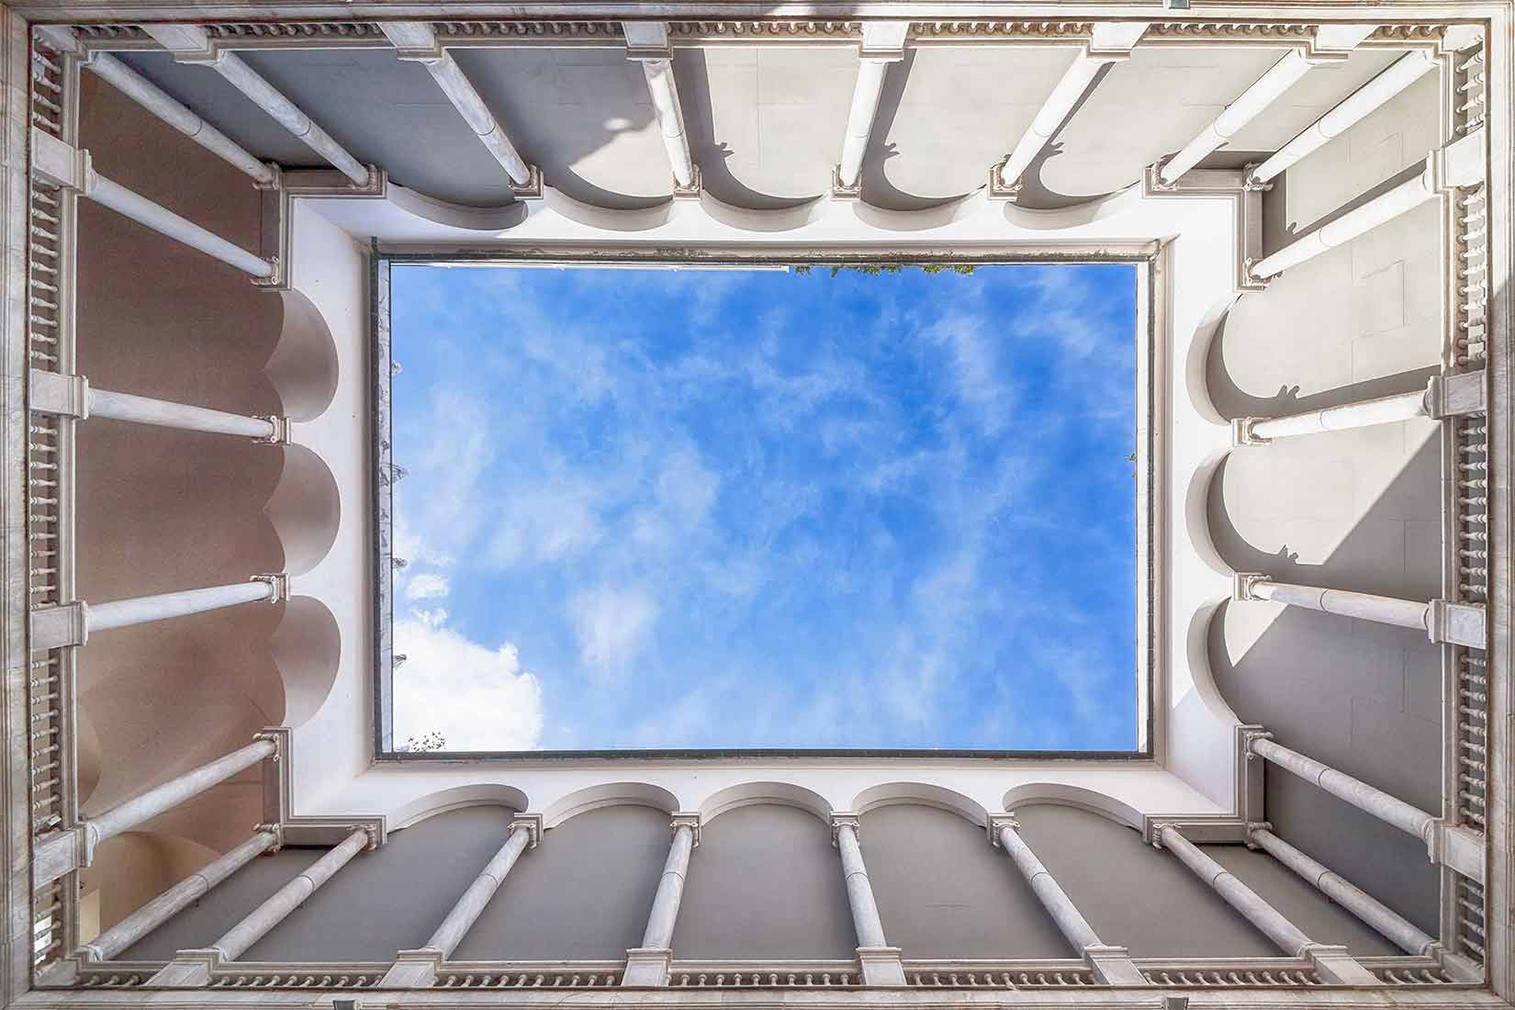 Italian courtyards series, Tunnels to the Sky by Seth Vane.